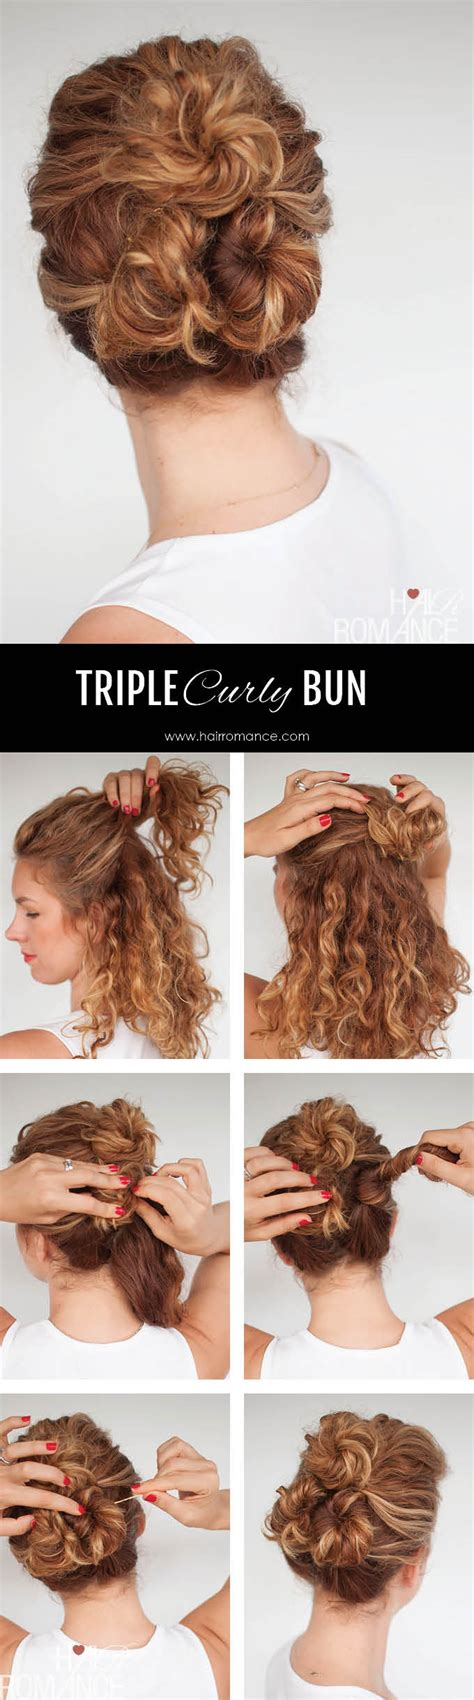 everyday hairstyles for wet hair easy everyday curly hairstyle tutorials the curly triple bun